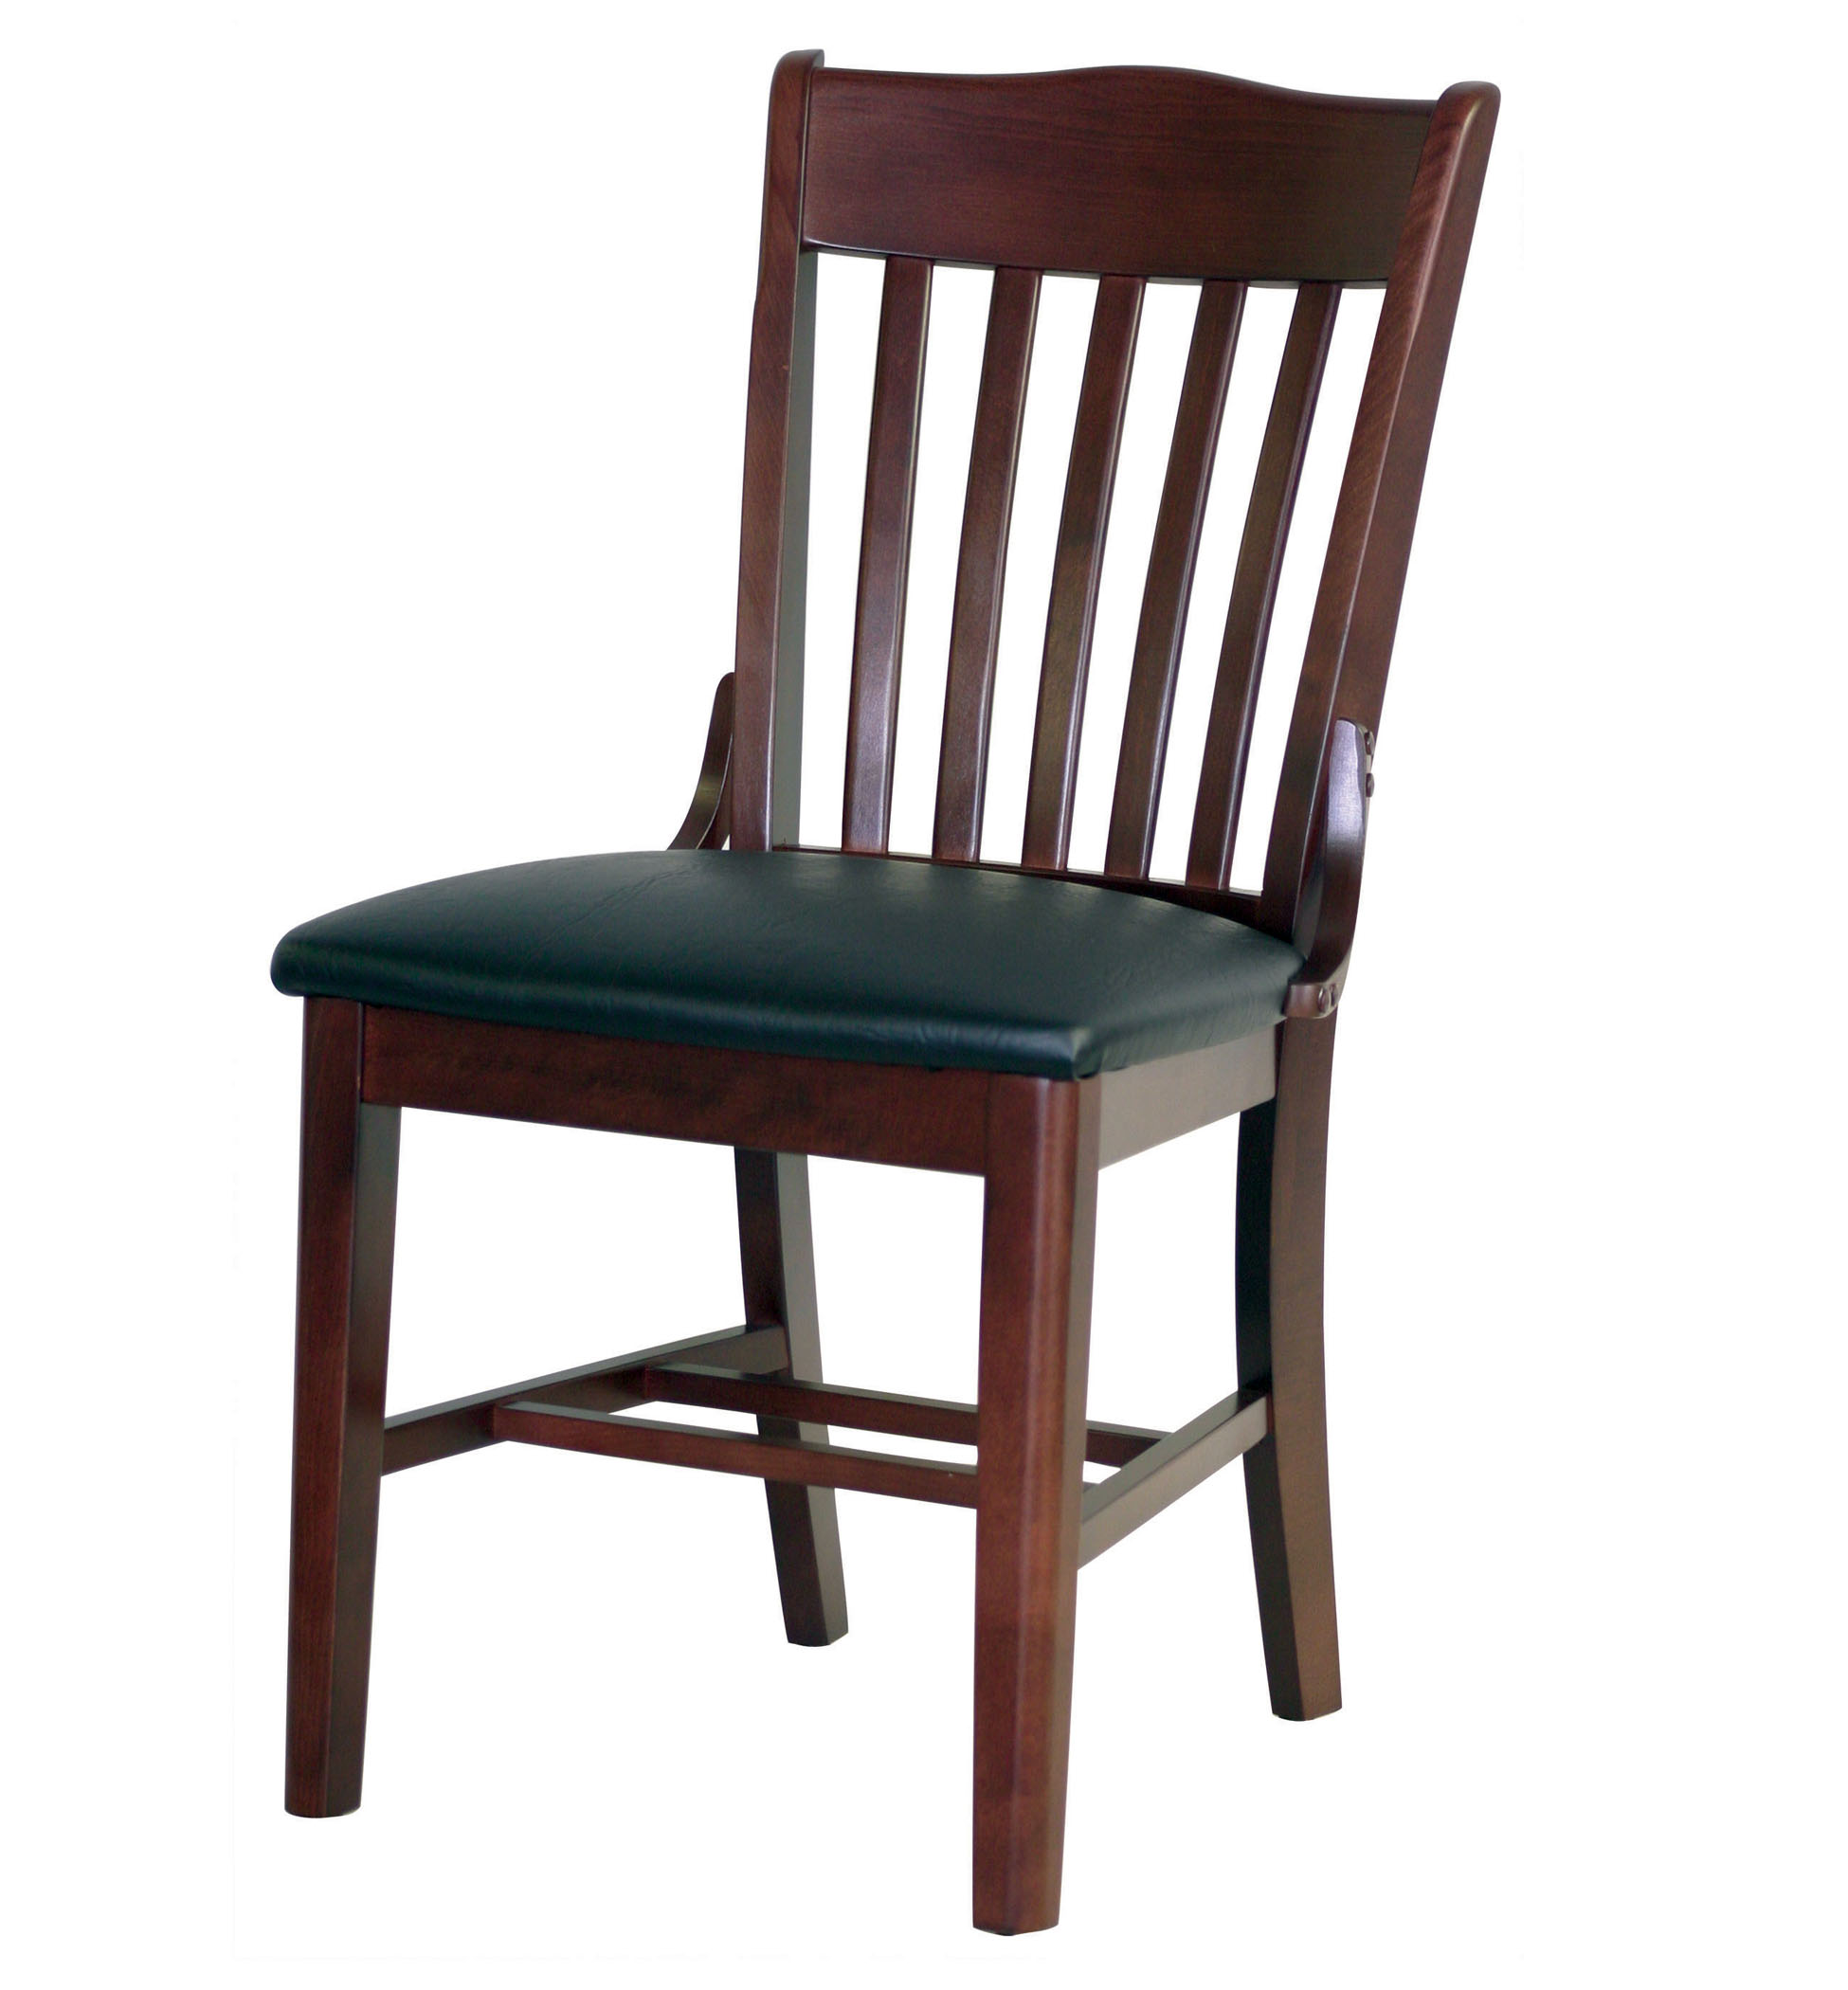 wood side chairs 7035 wood side chair 1149